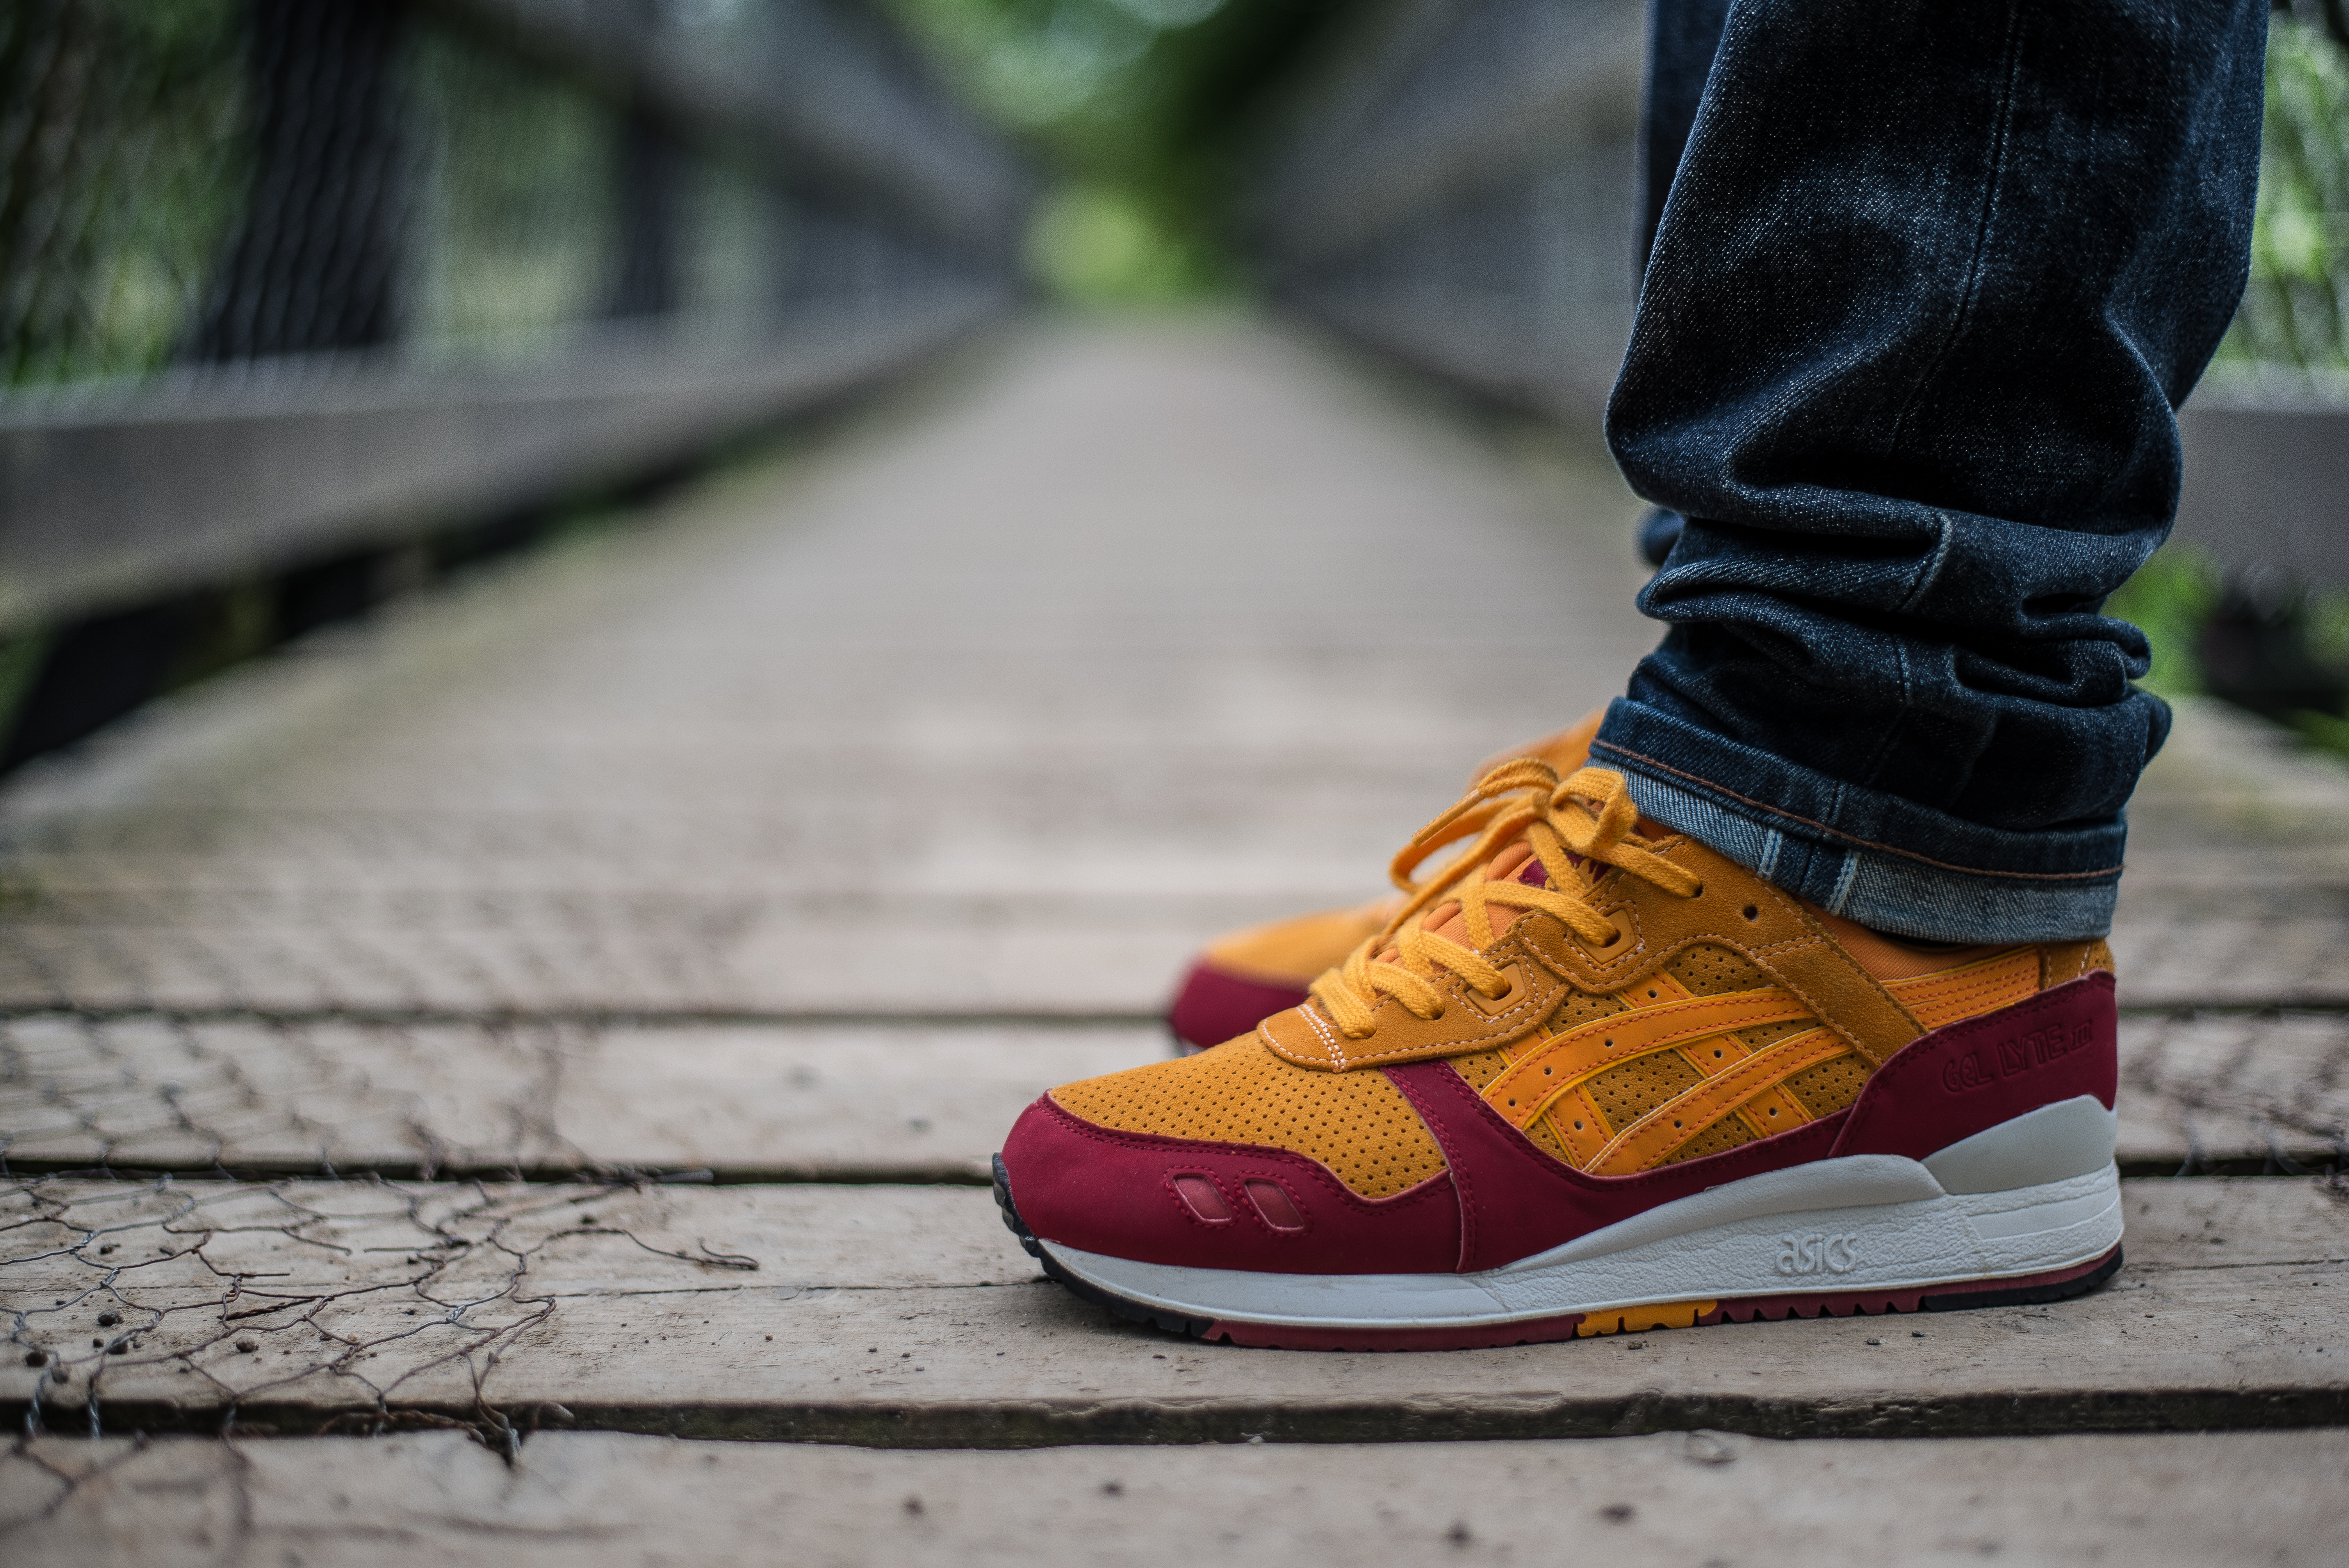 sneakers for cheap 93d29 b74ef WOMFT – Asics Gel Lyte III x hanon shop 'Wildcats' – thomaslindie